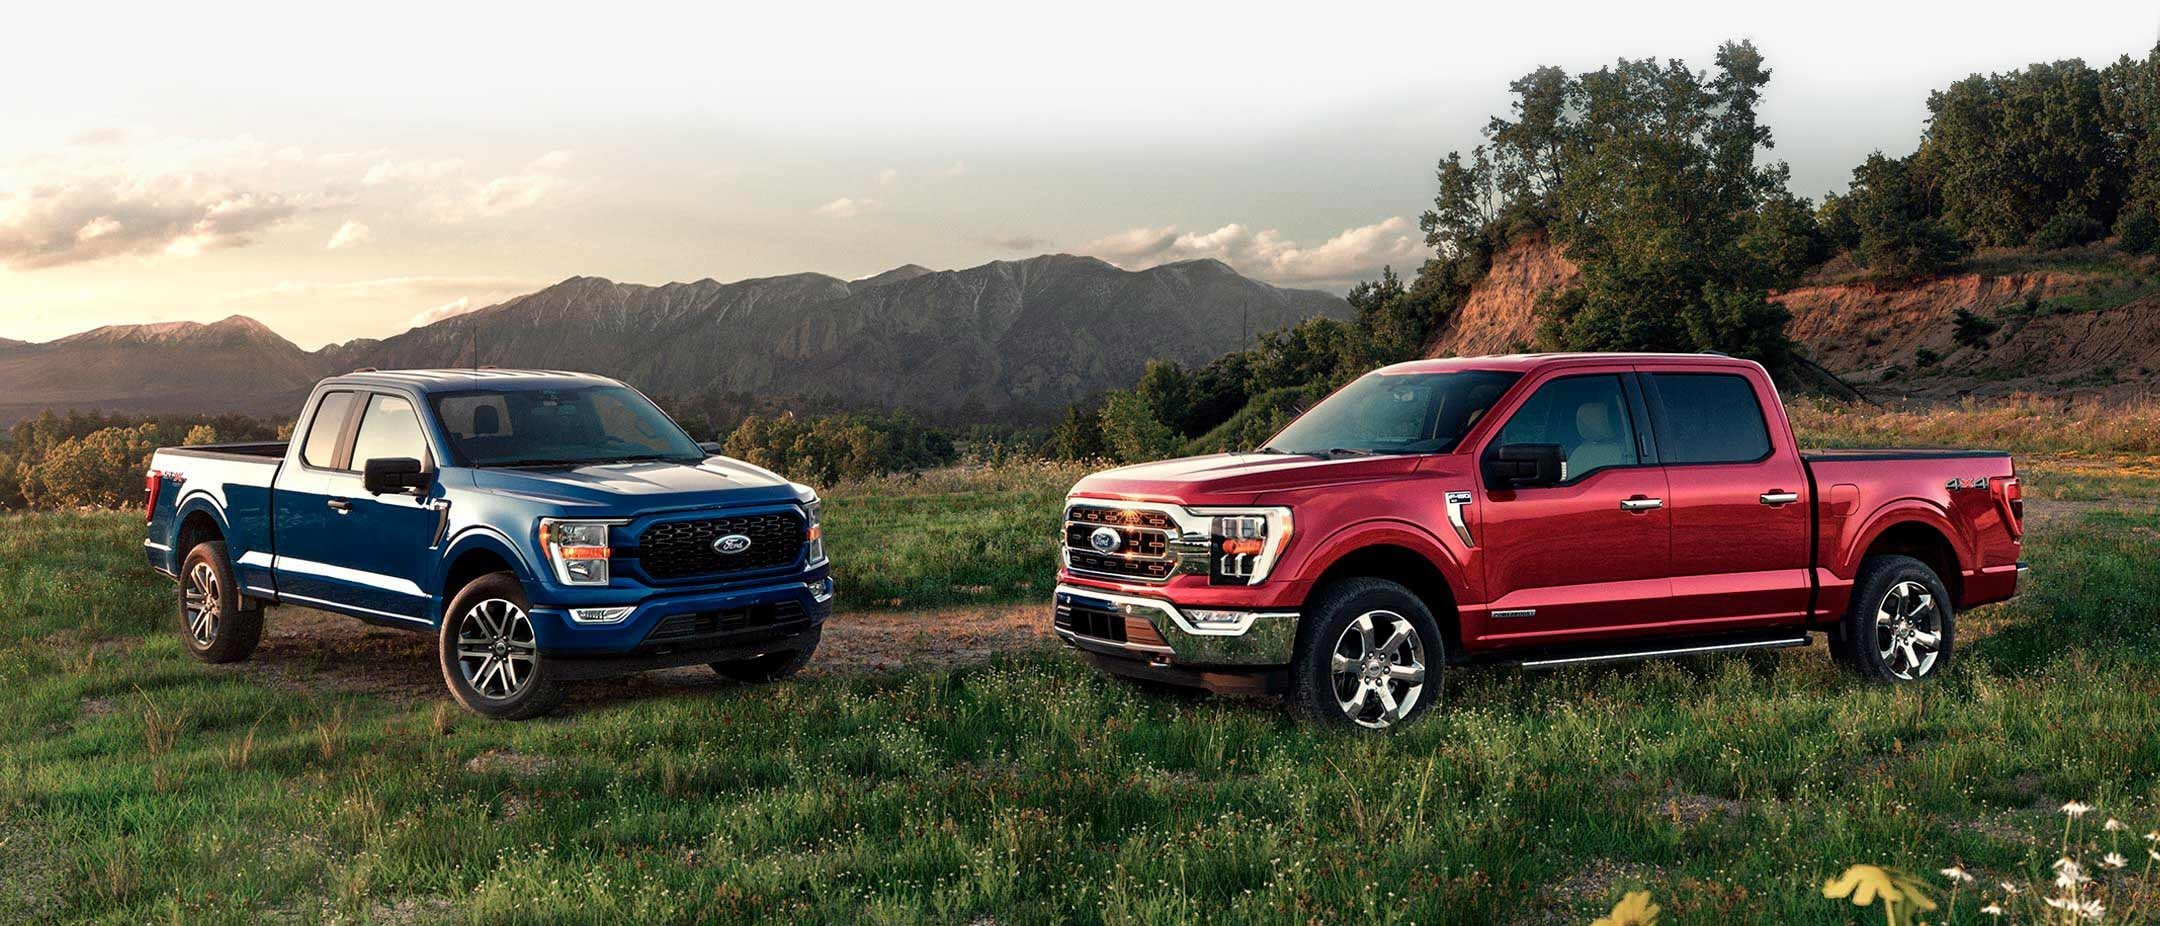 All-New F-150 Featuring Ford-Patented Max Recline Seats Takes Comfort To the Next Level